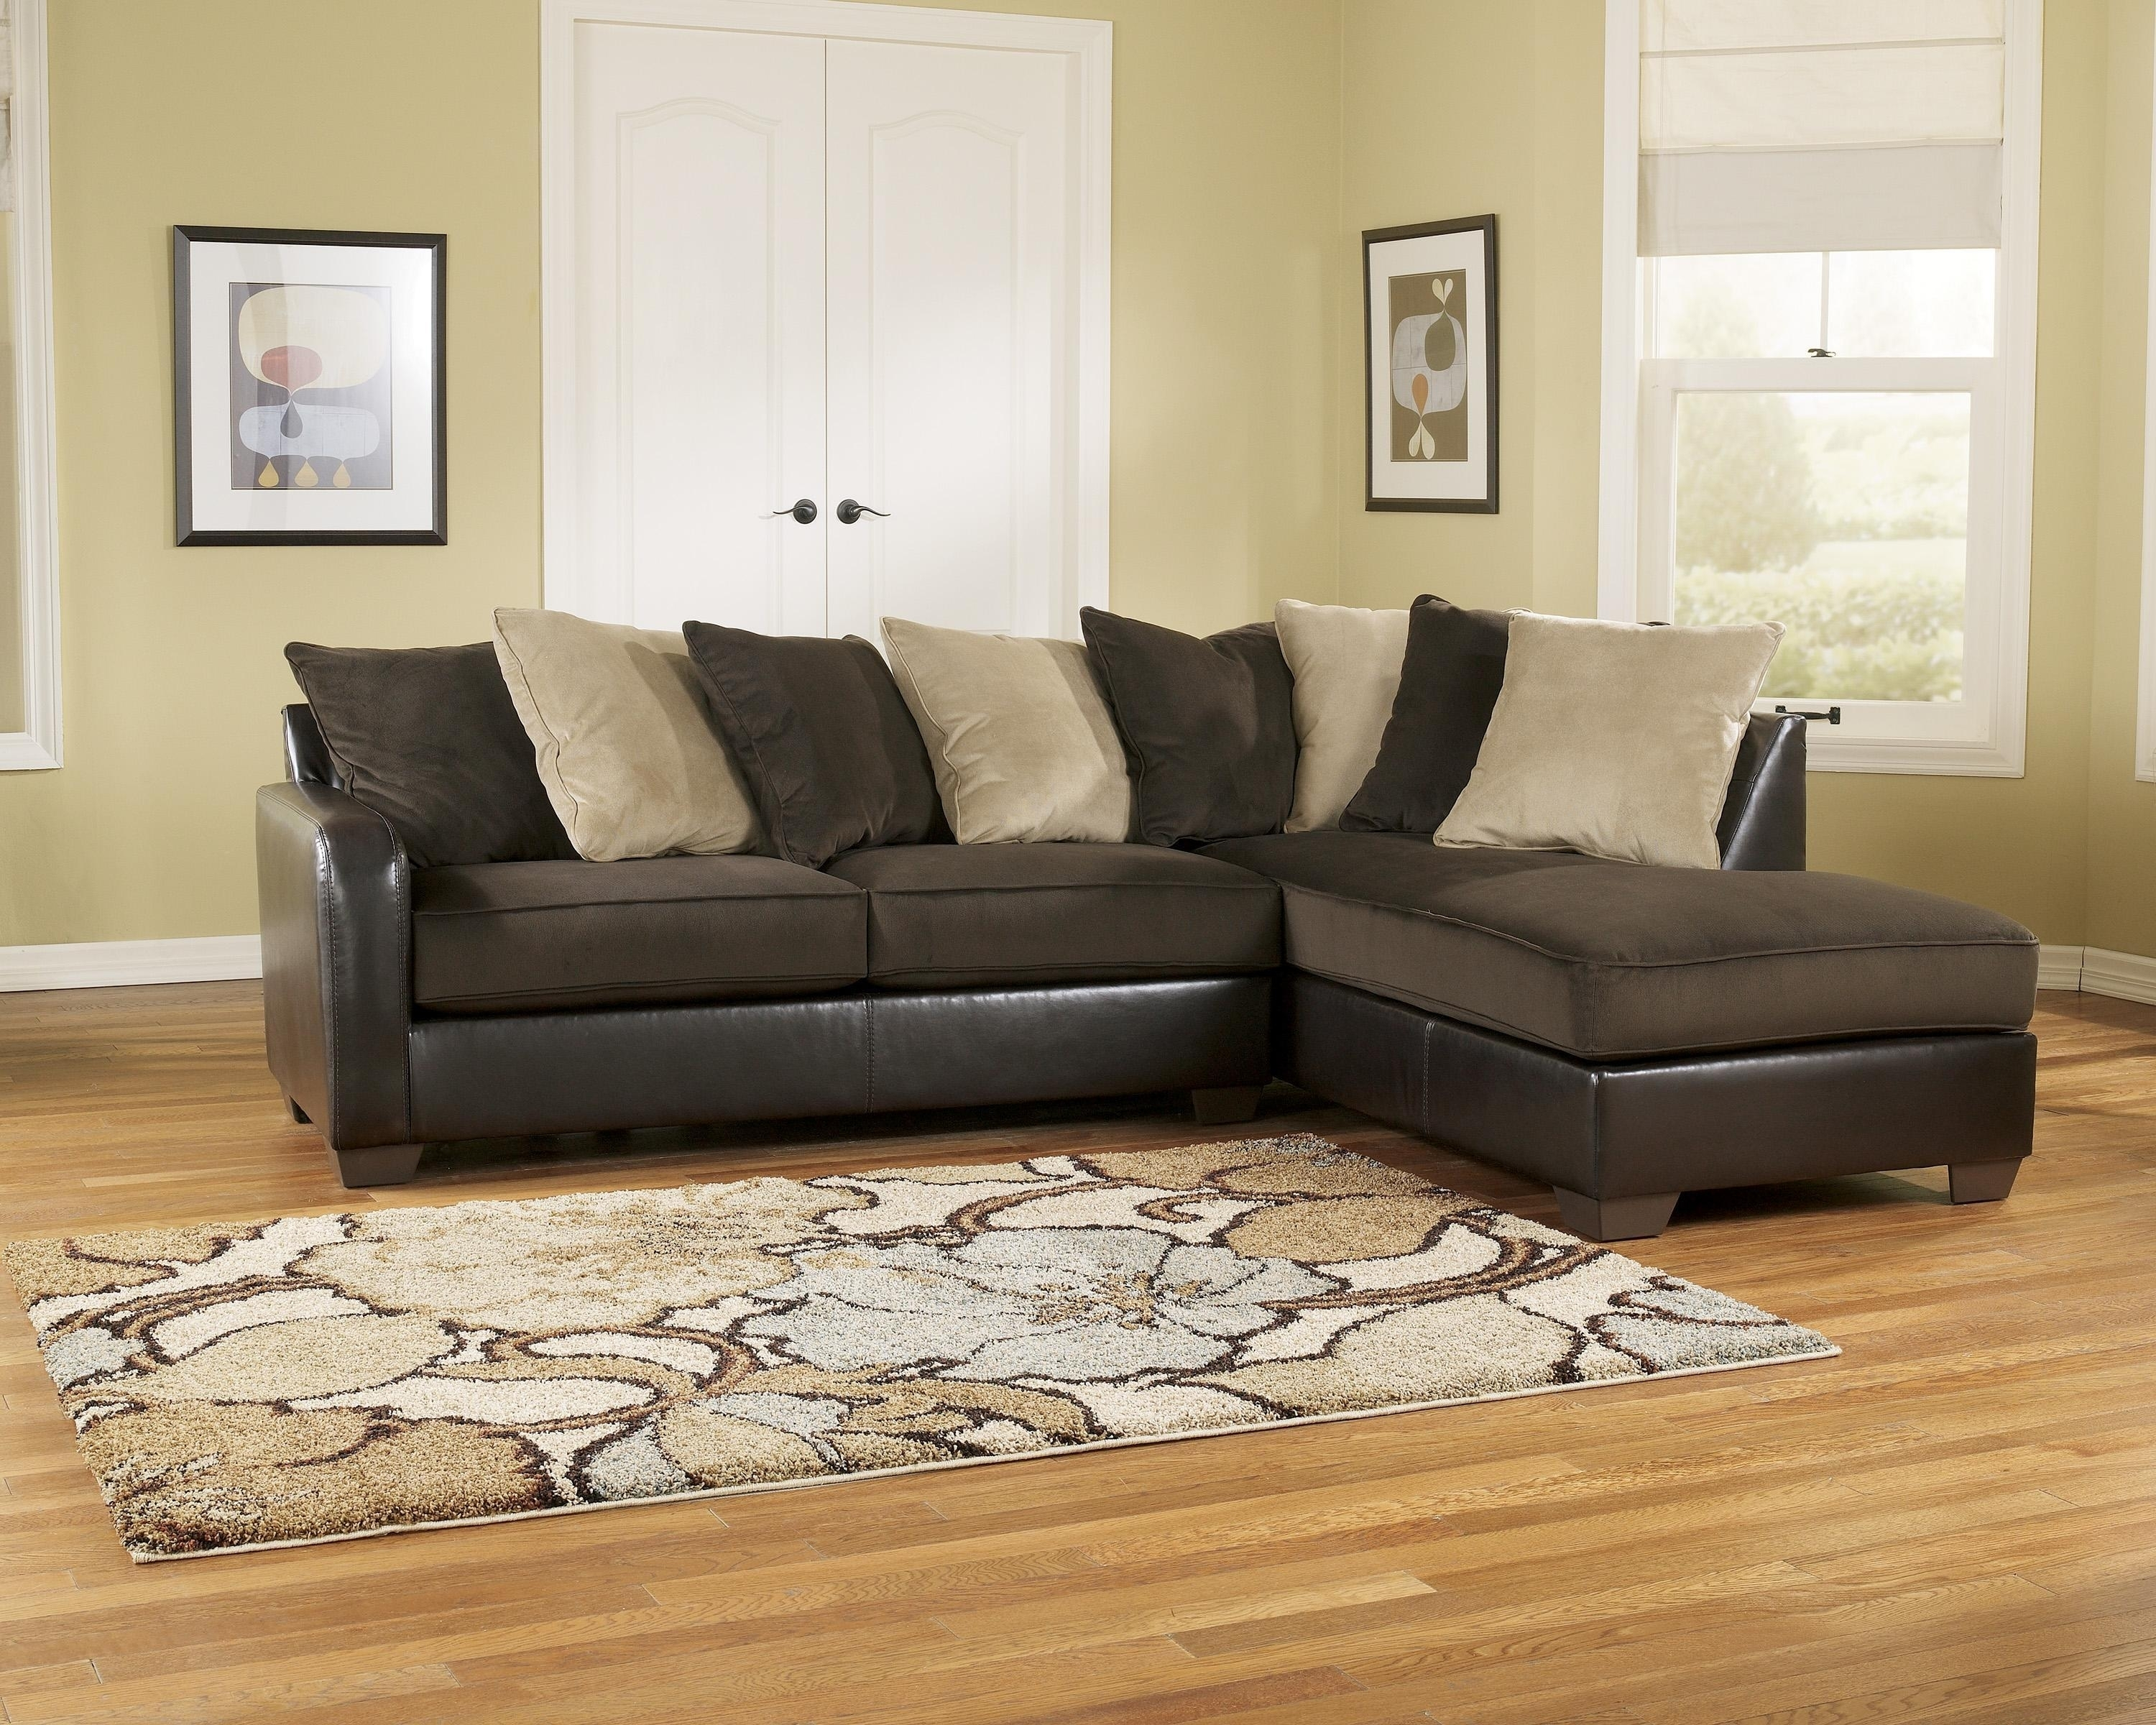 20 Top Sectional Sofas Ashley Furniture | Sofa Ideas Intended For Sectional Sofas At Ashley Furniture (View 1 of 15)